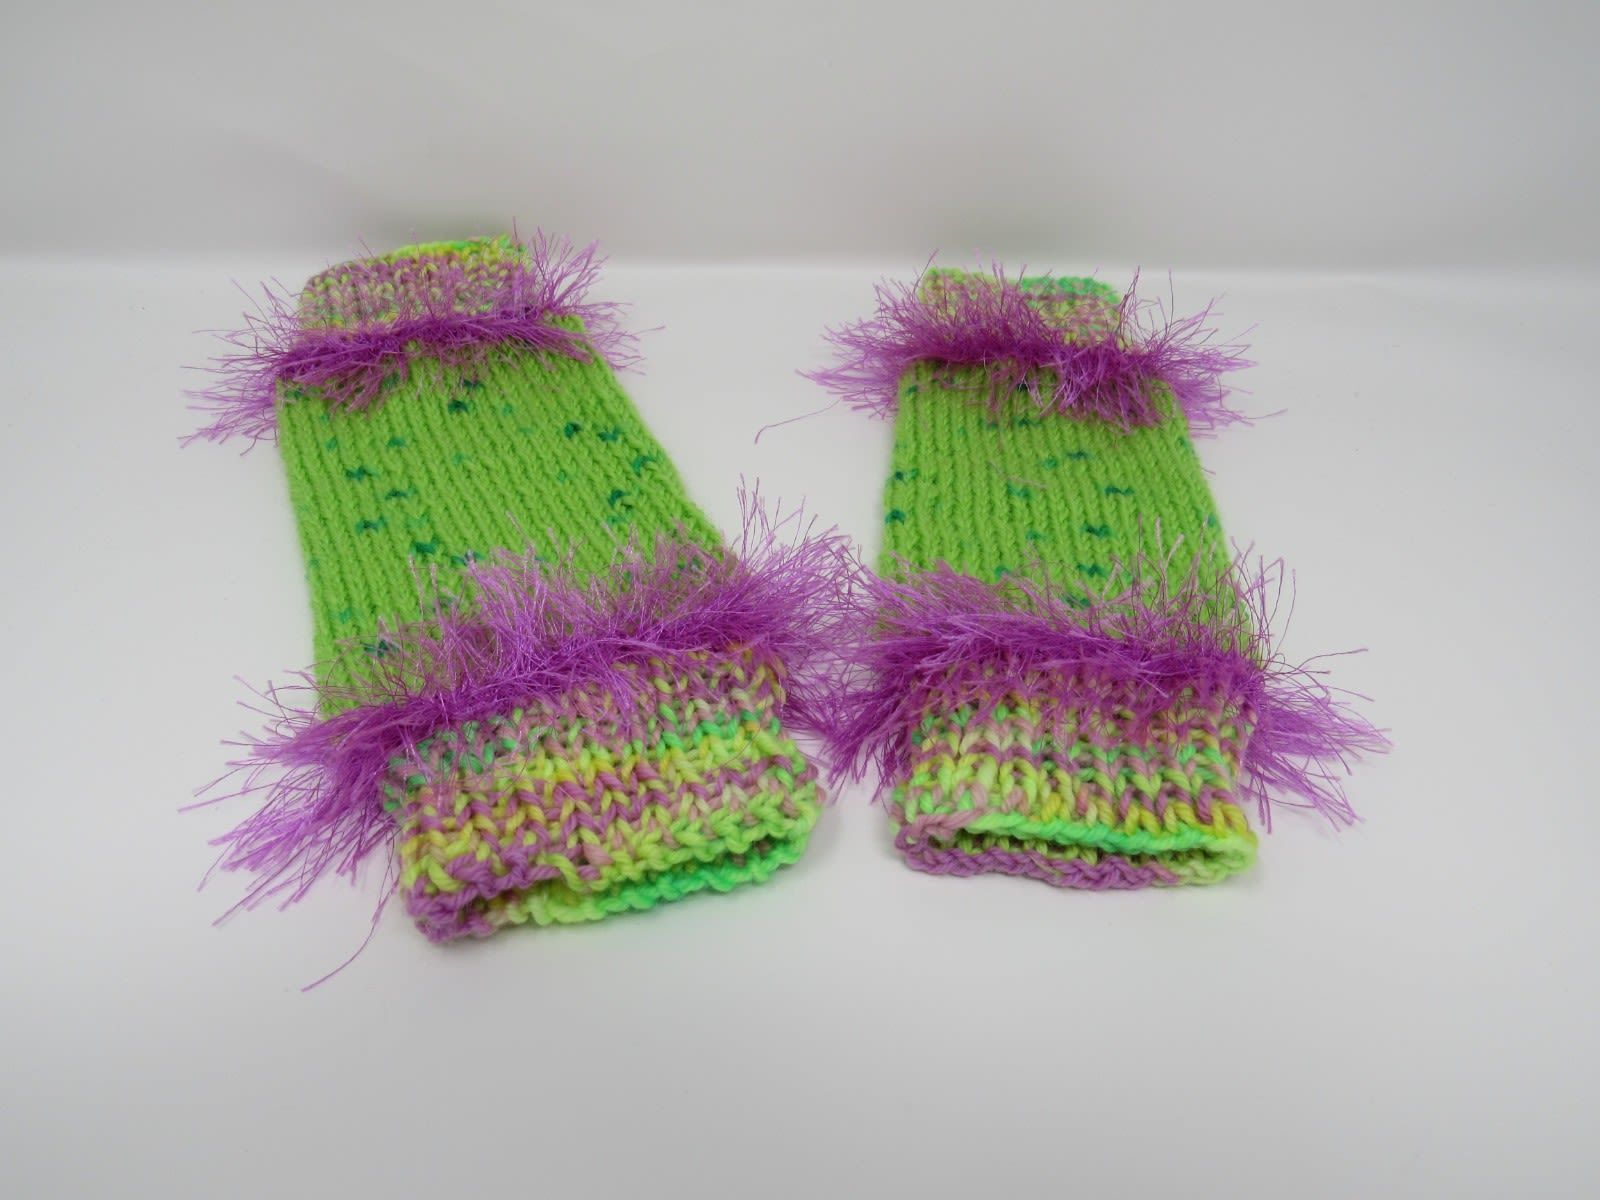 Handcrafted Knitted Legwarmers Green/Violet Fuzzy Female Kids 0-1 Striped